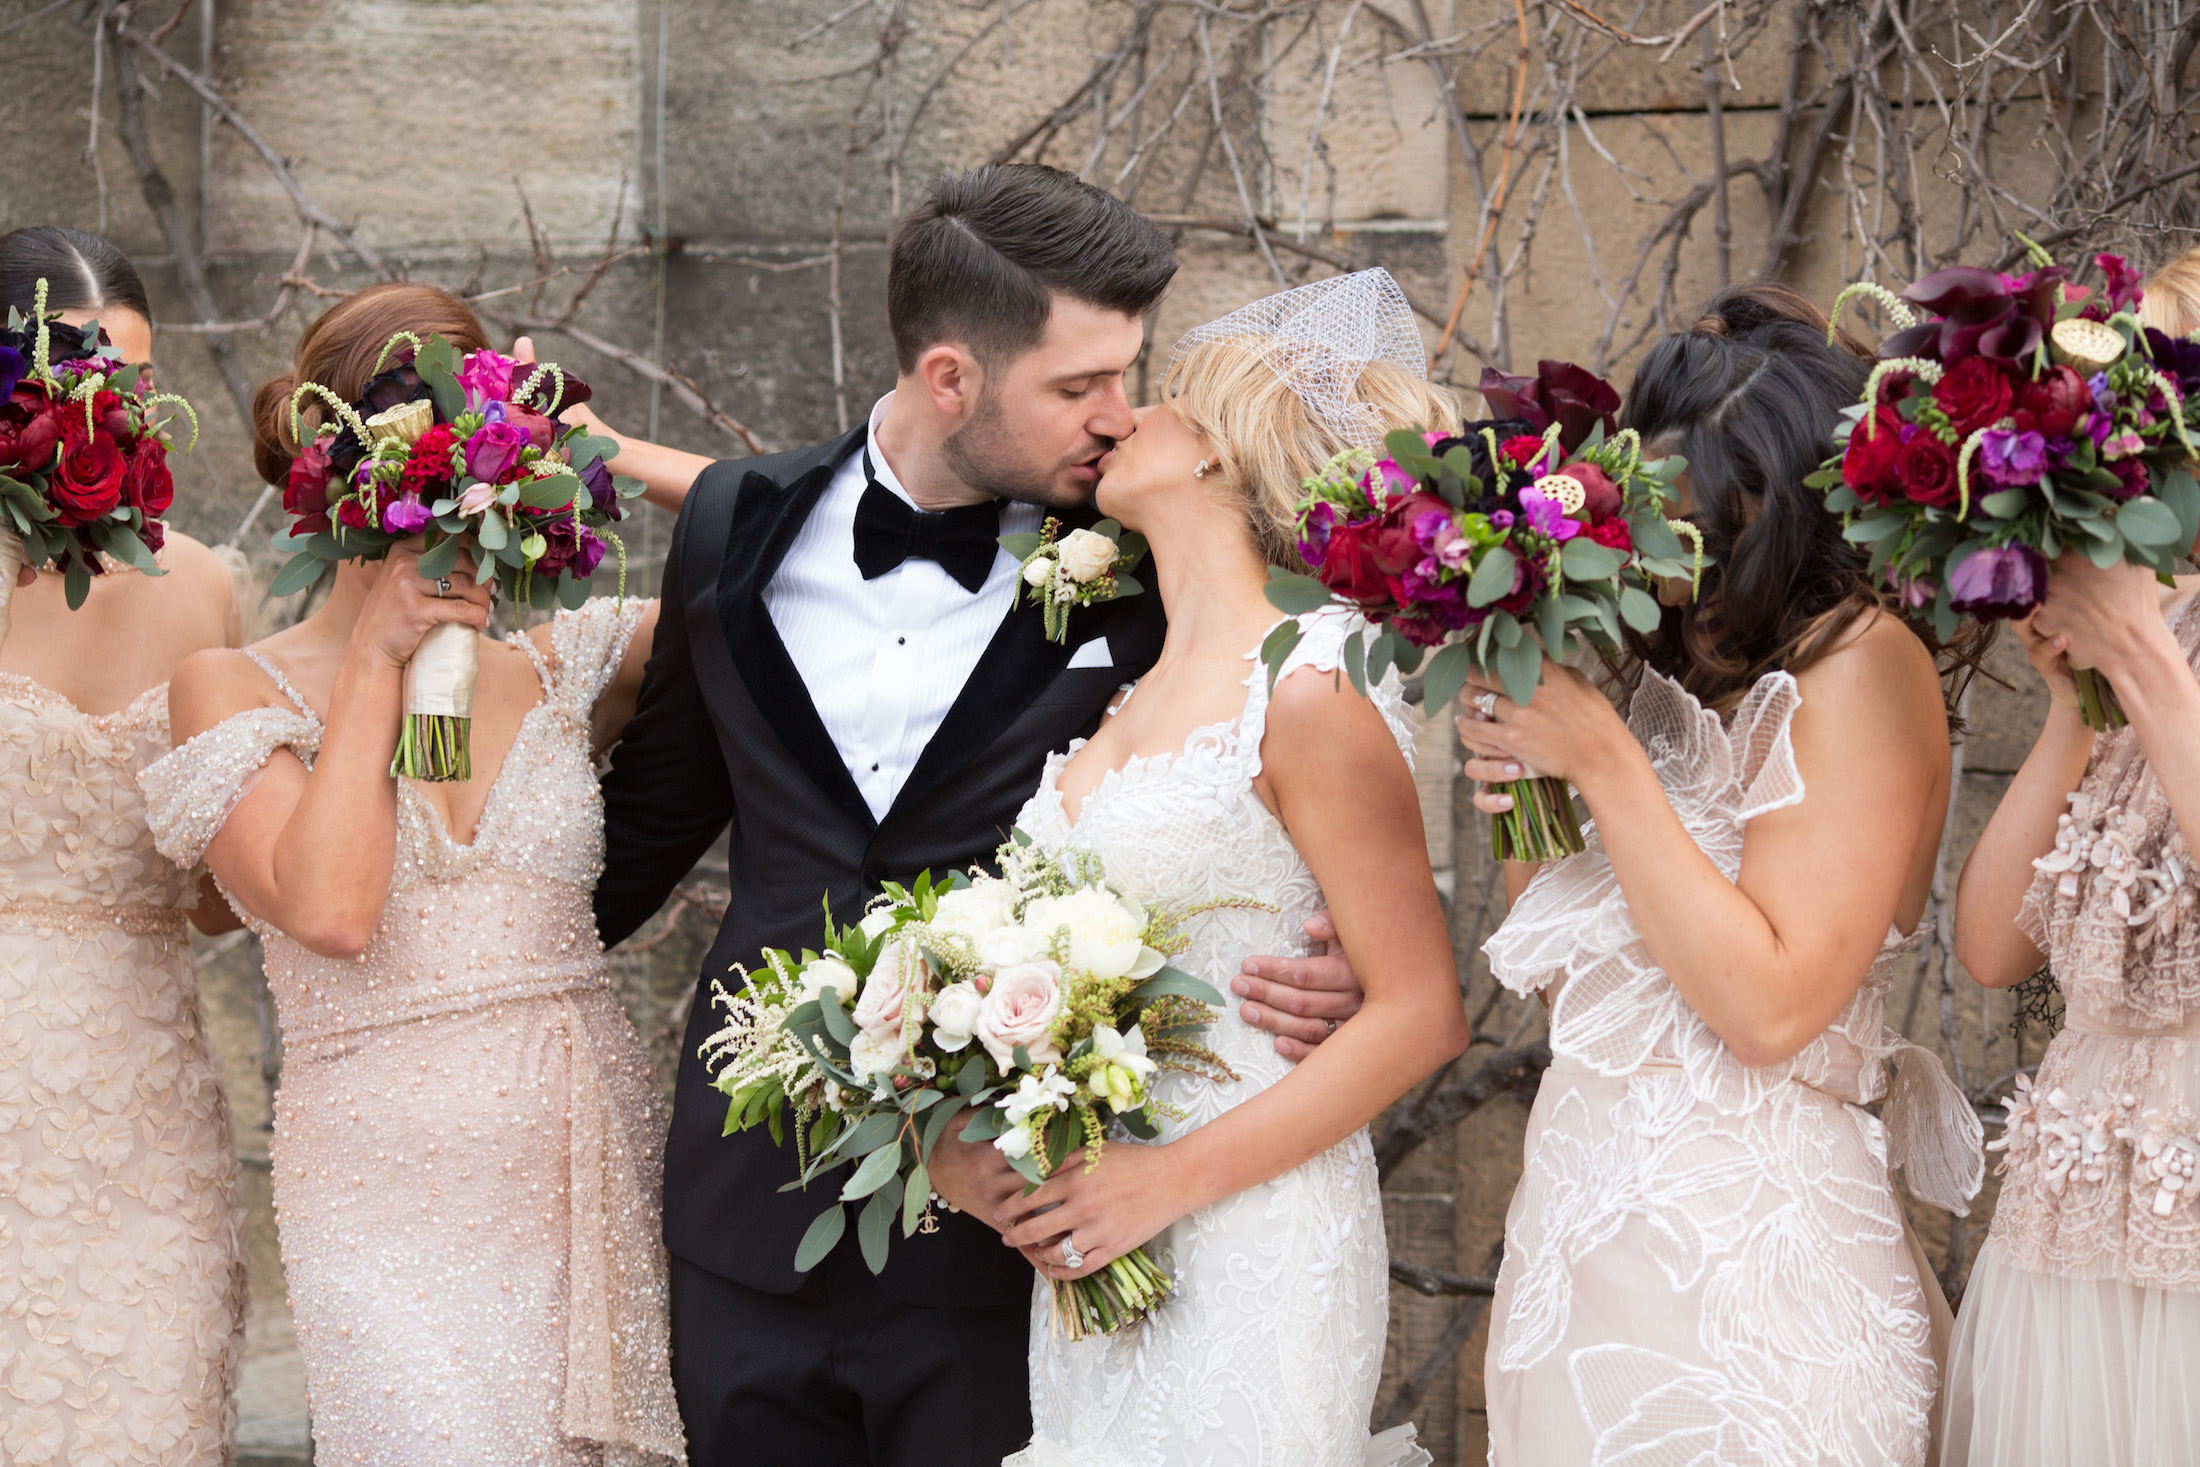 love, hope, flowers, lhflowers, wedding flowers, flowers, Sydney, Sydney florist, bridal party, dark, flowers, winter, wedding, kissing, photo, one, tree, hill, plum, coloured, flowers